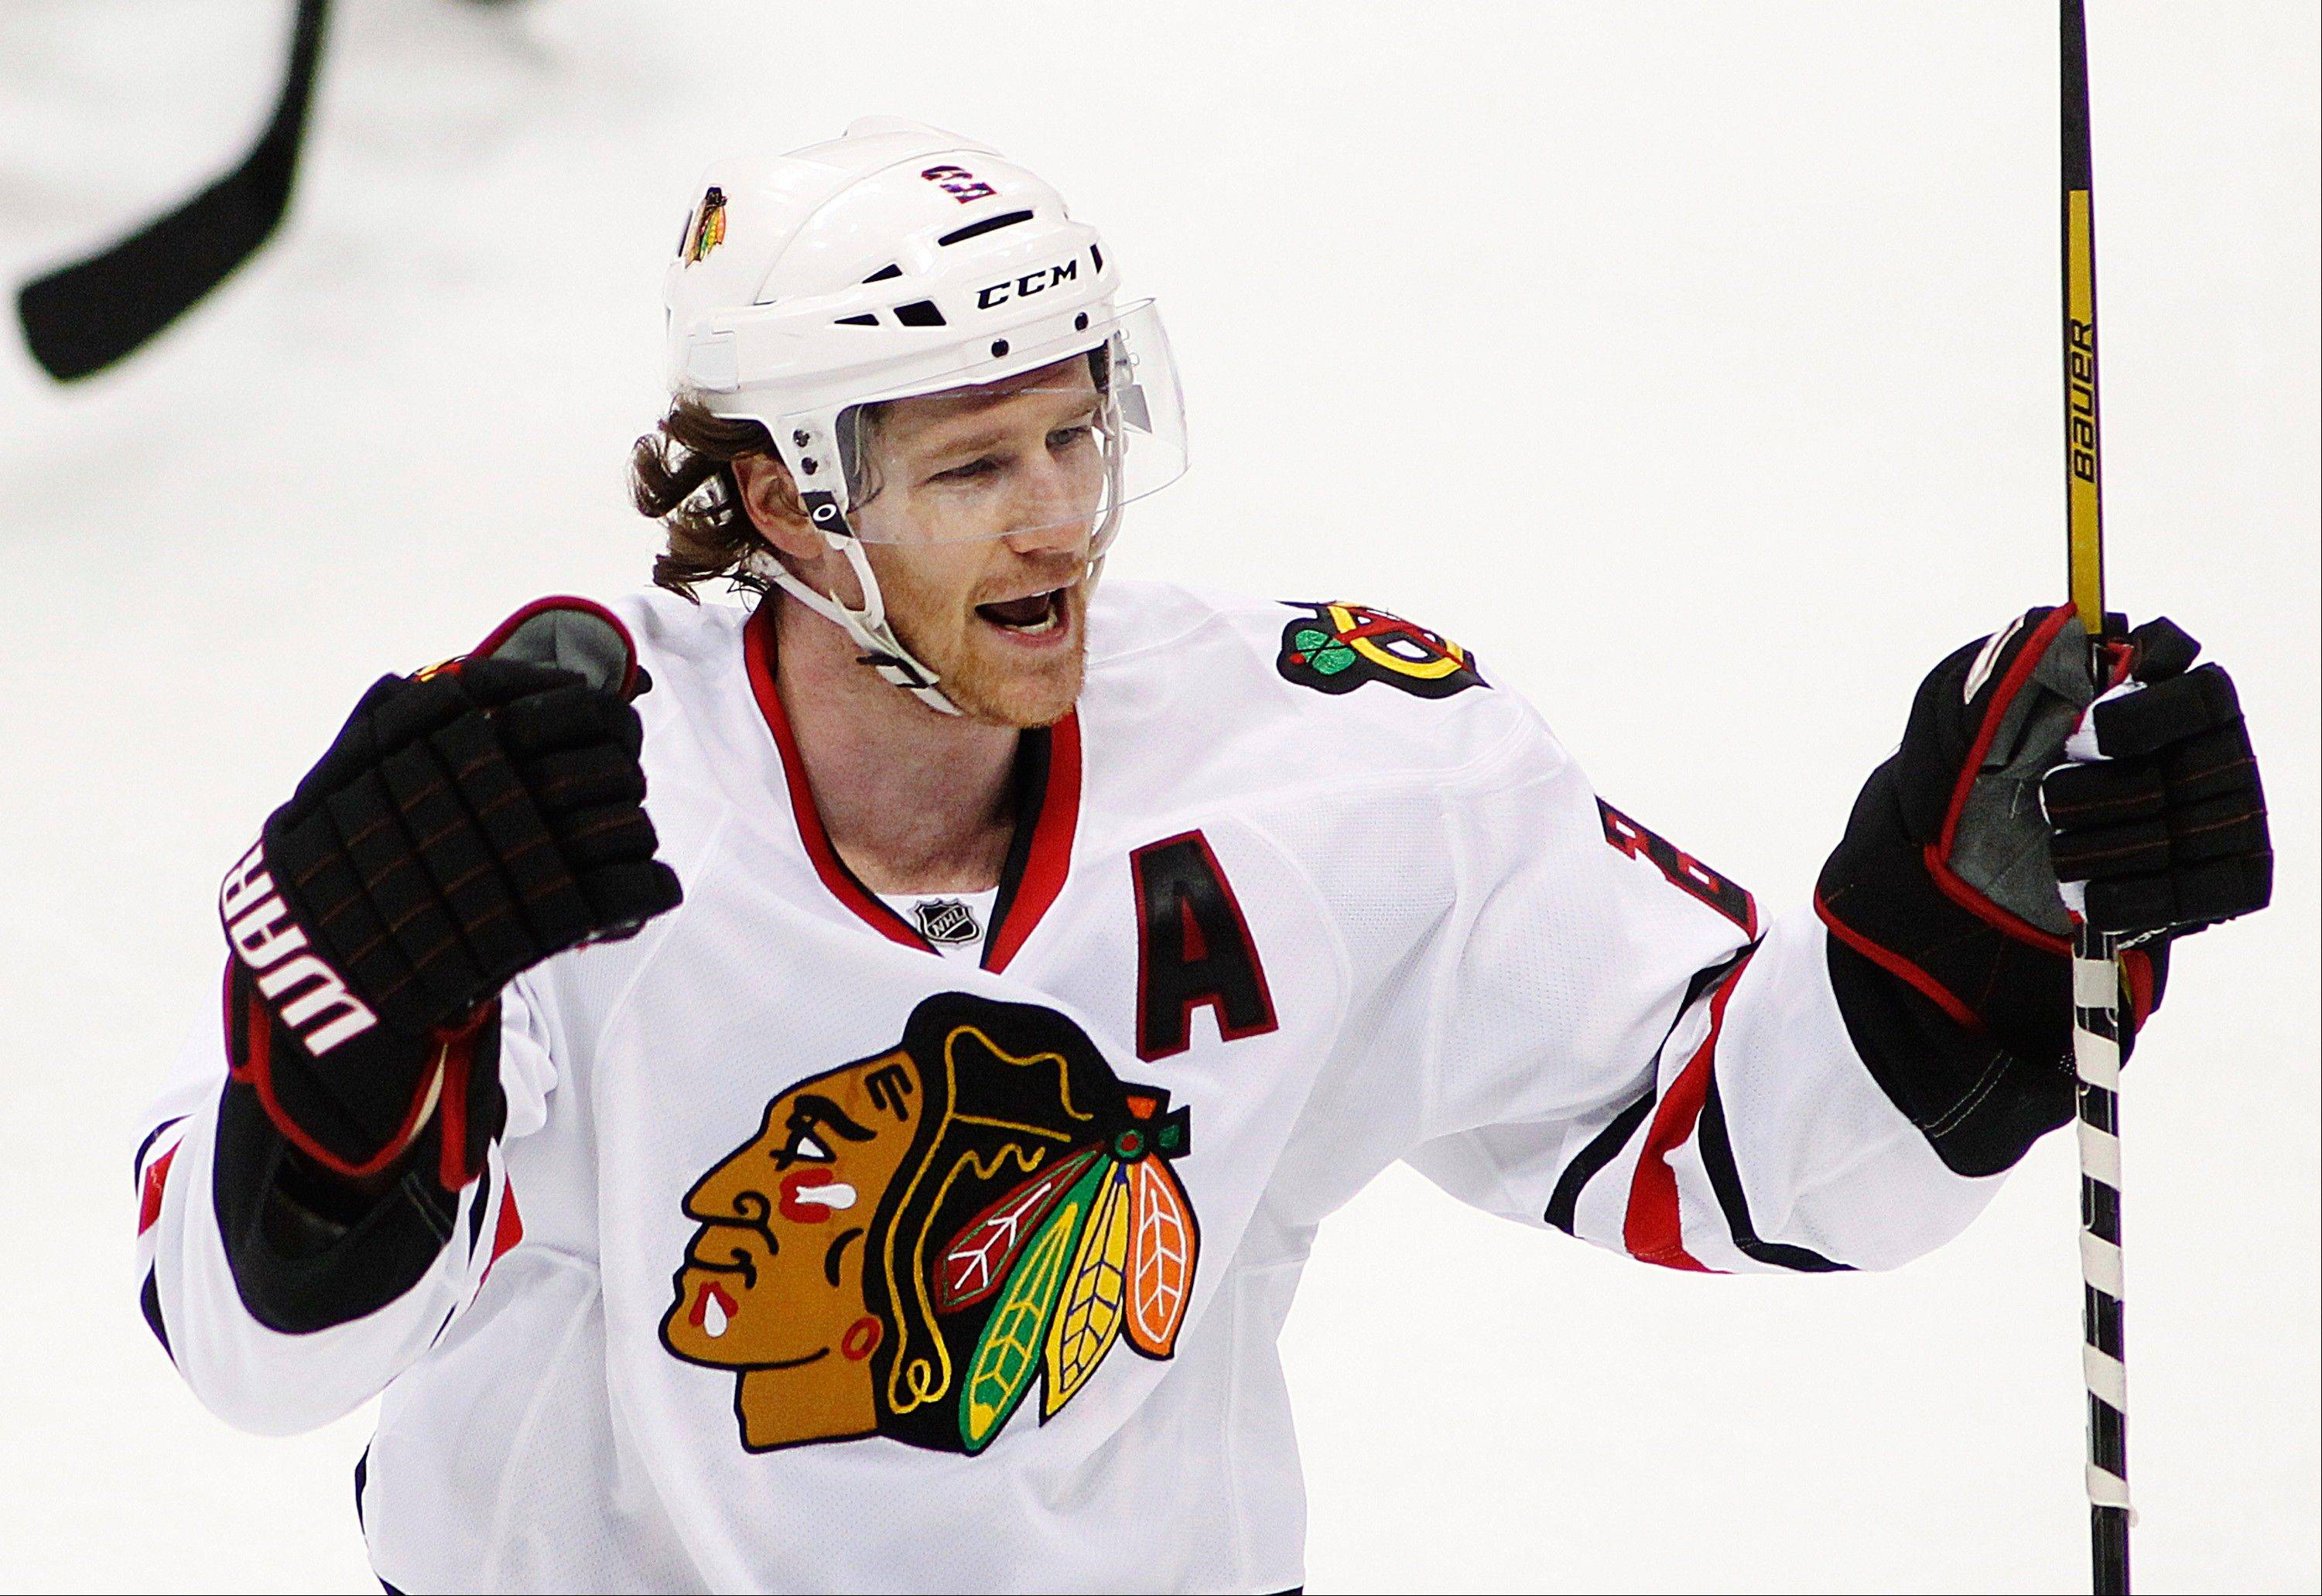 The Blackhawks' Duncan Keith had plenty to celebrate Tuesday when his wife, Kelly-Rae, gave birth to their first child -- a son they named Colton Duncan. After the birth in Chicago, Keith flew back to Minnesota and played in Game 4 of the Stanley Cup playoff series against the Wild.